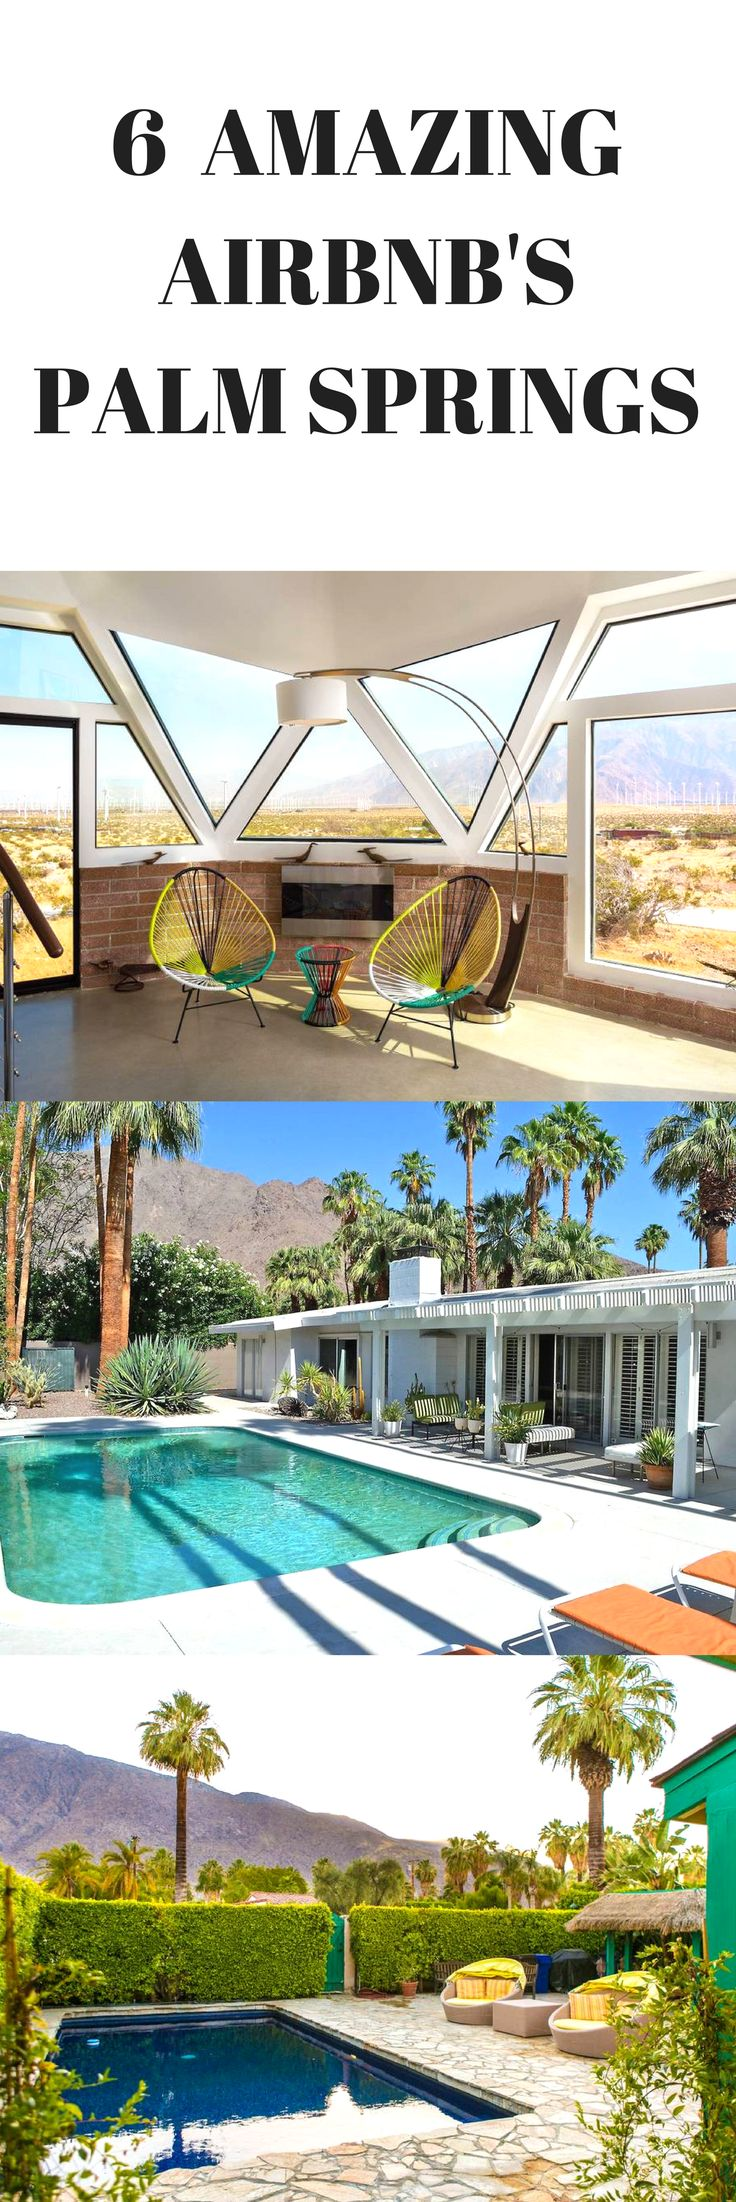 Luxury stay's in Palm Springs for the ultimate weekend away.